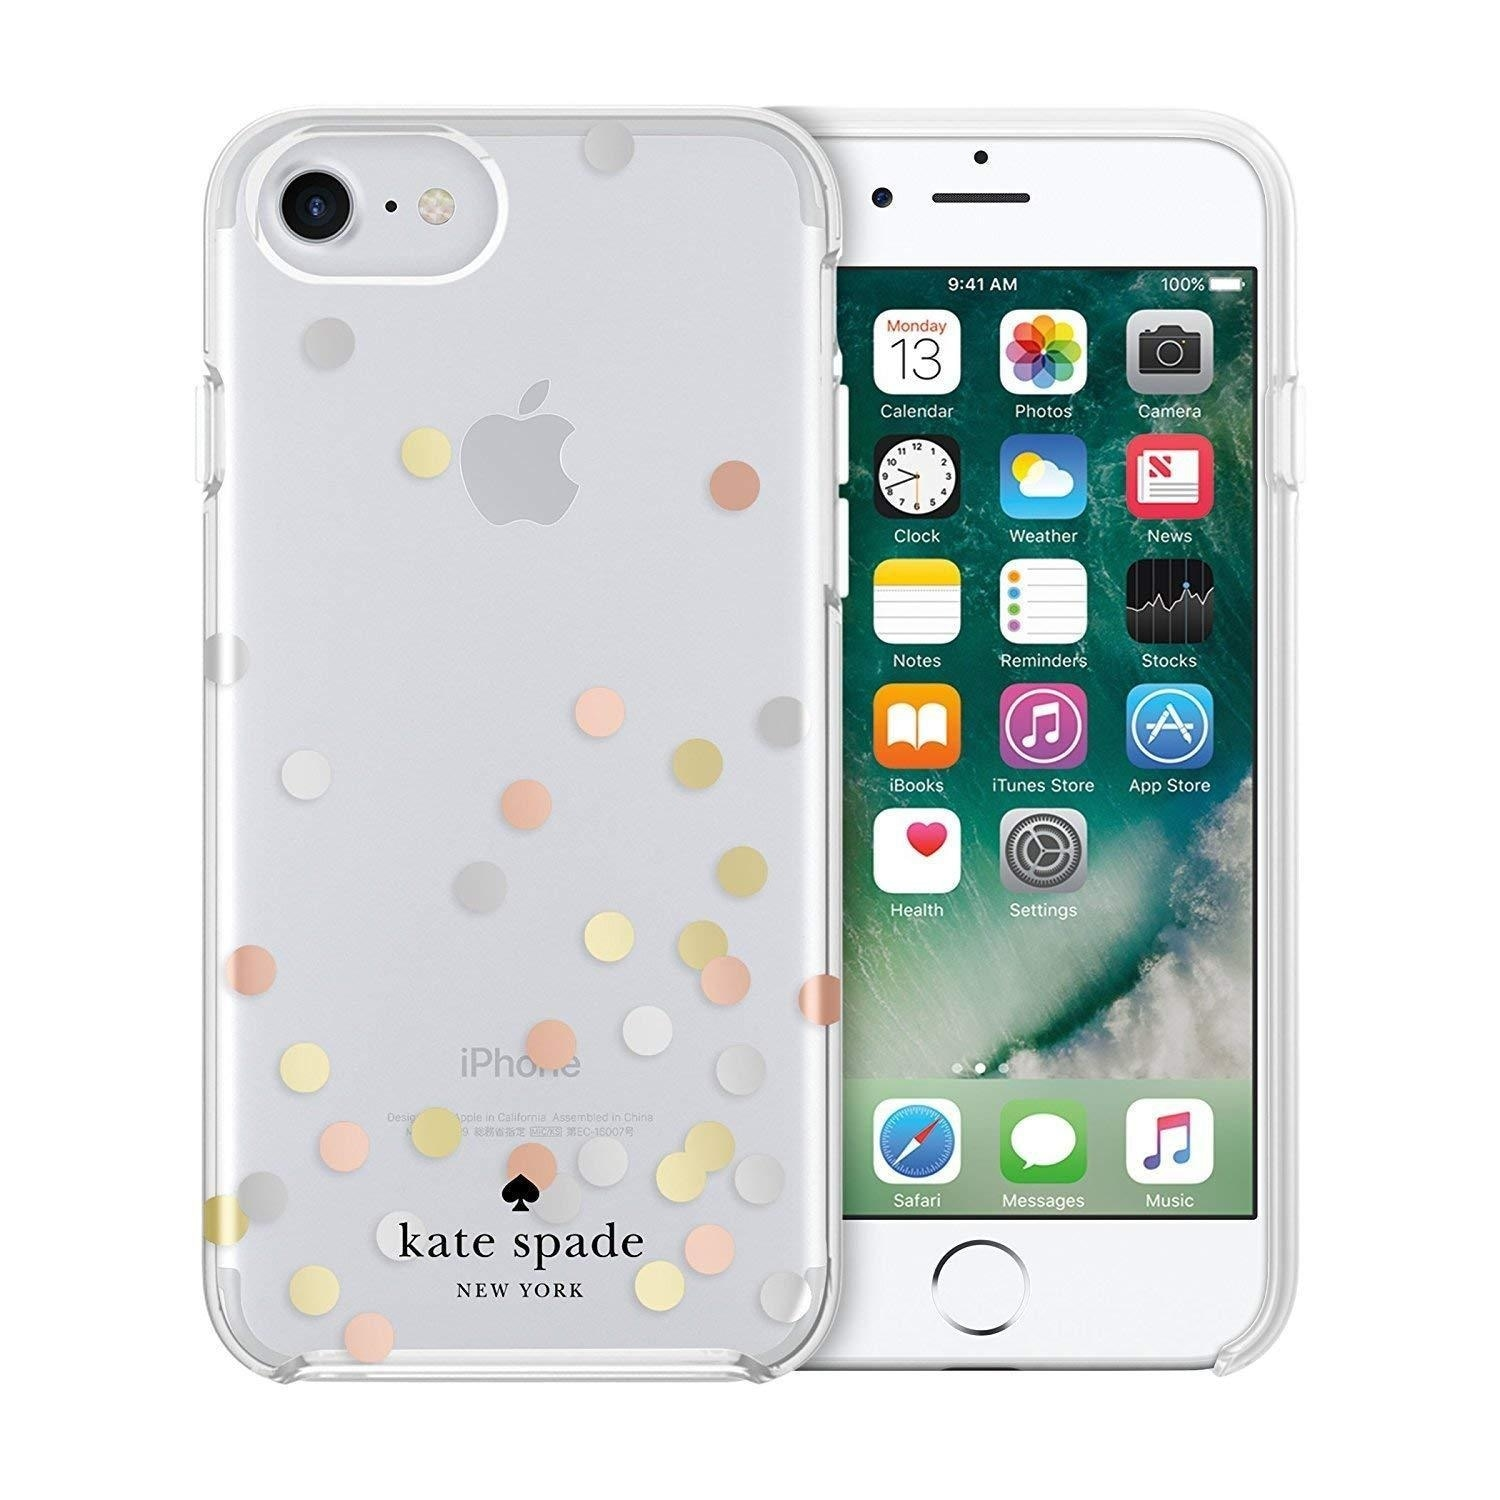 brand new 3f03d ade39 Kaete Spade New York Confetti Dot Protective Case for iPhone 8 / iPhone 7 /  iPhone 6, Silver/Gold/Rose Gold